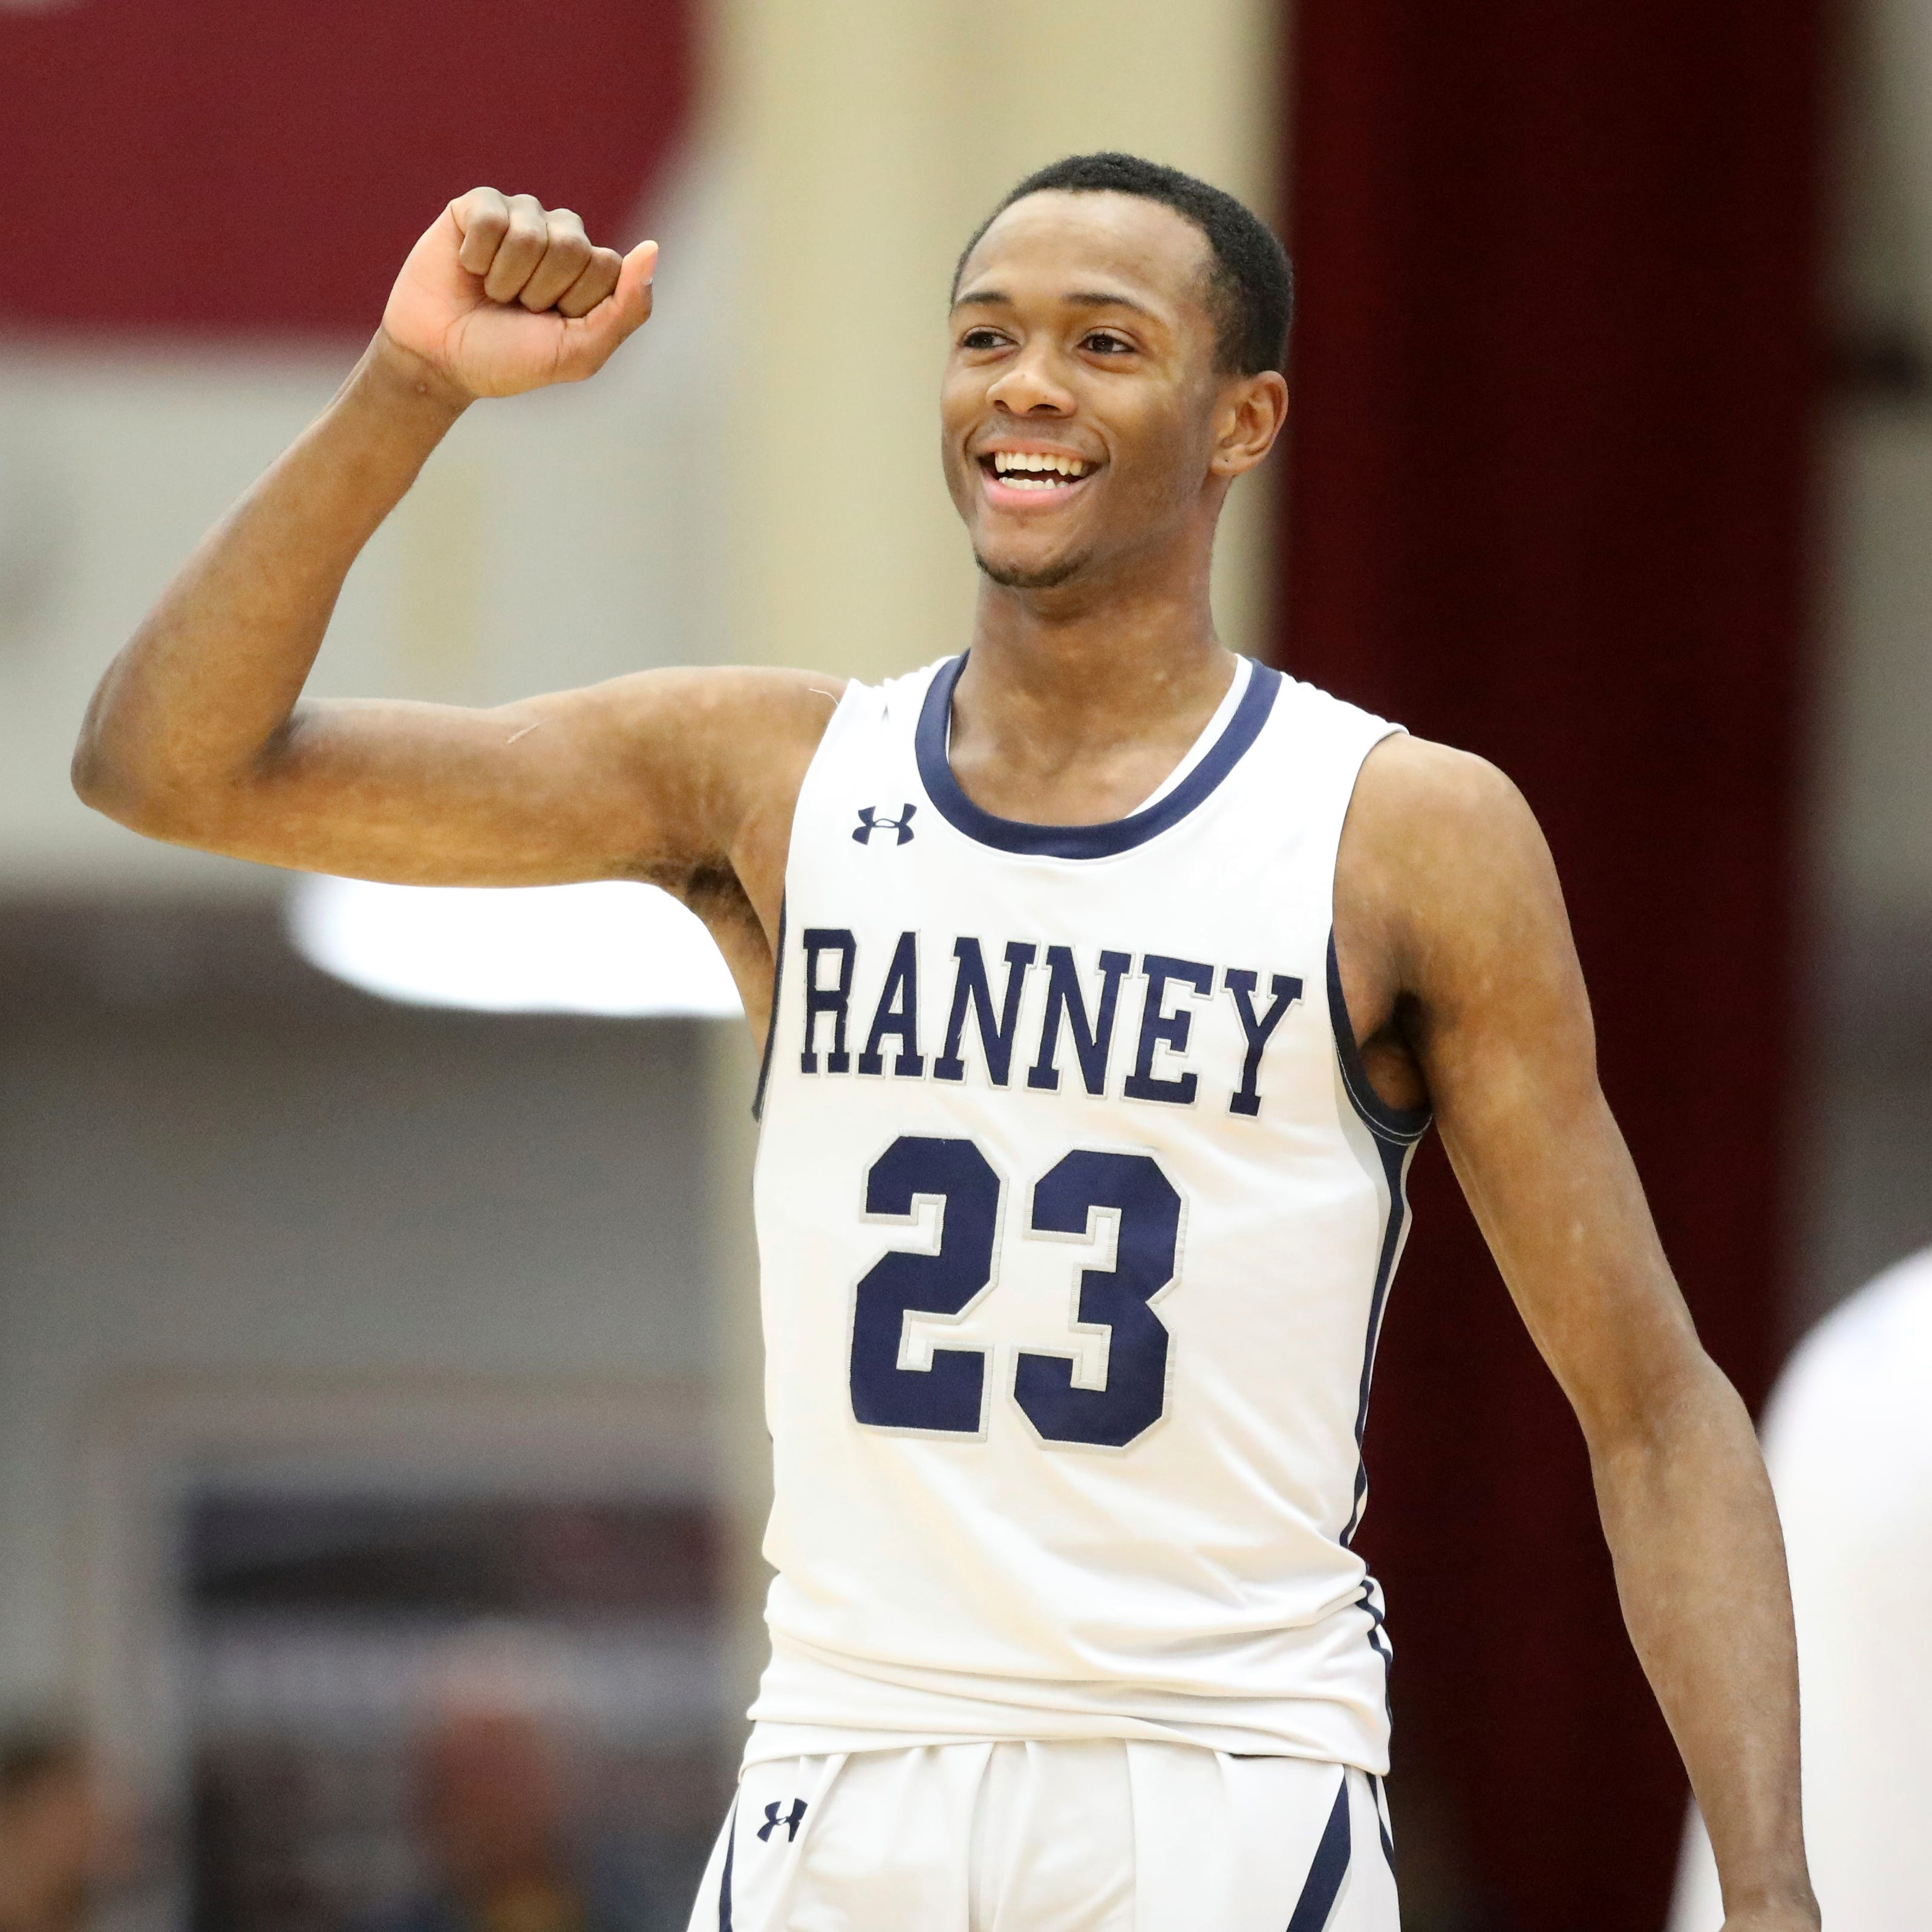 Ranney's Scottie Lewis could be something special beyond basketball: Newman